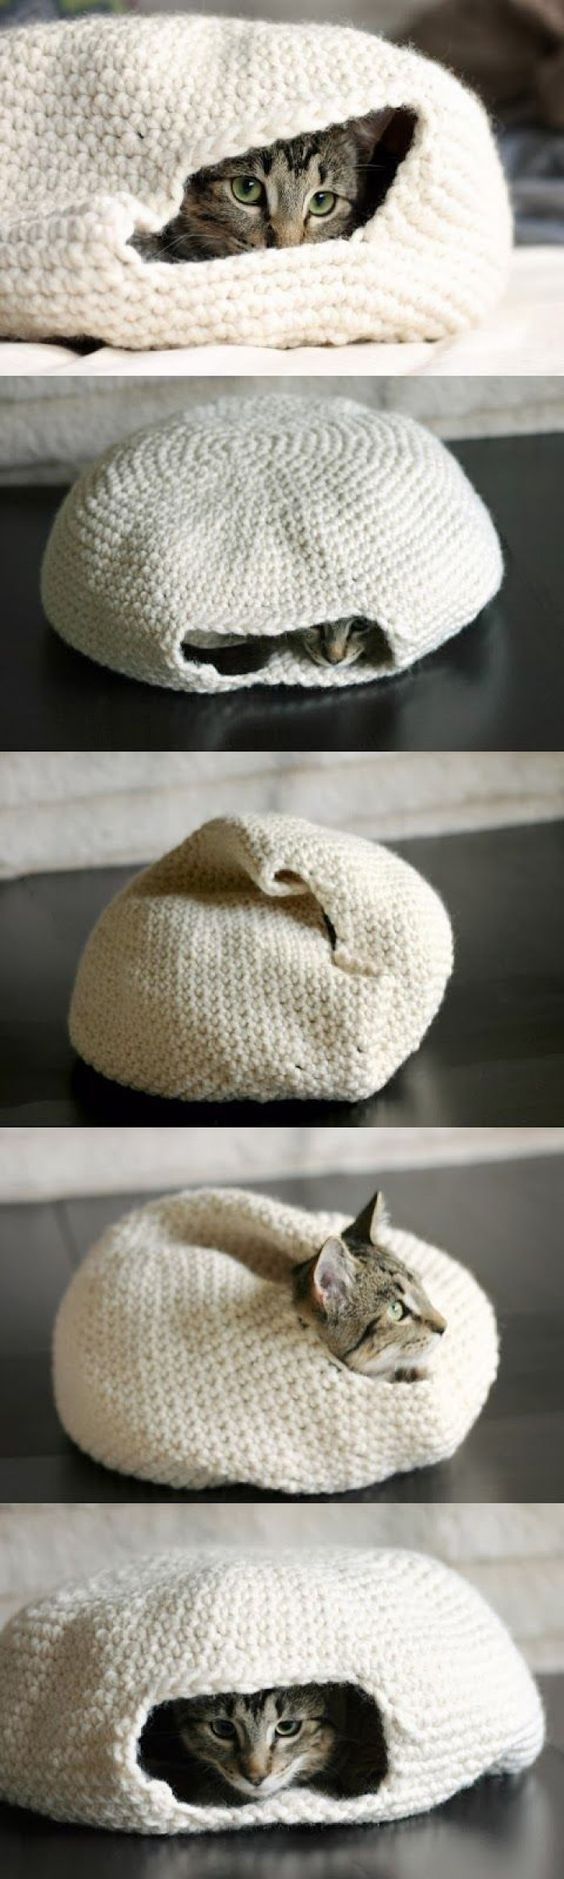 Crochet bag diy crochet craft crafts diy crafts do it yourself diy projects diy crochet ideas crochet projects diy and crafts